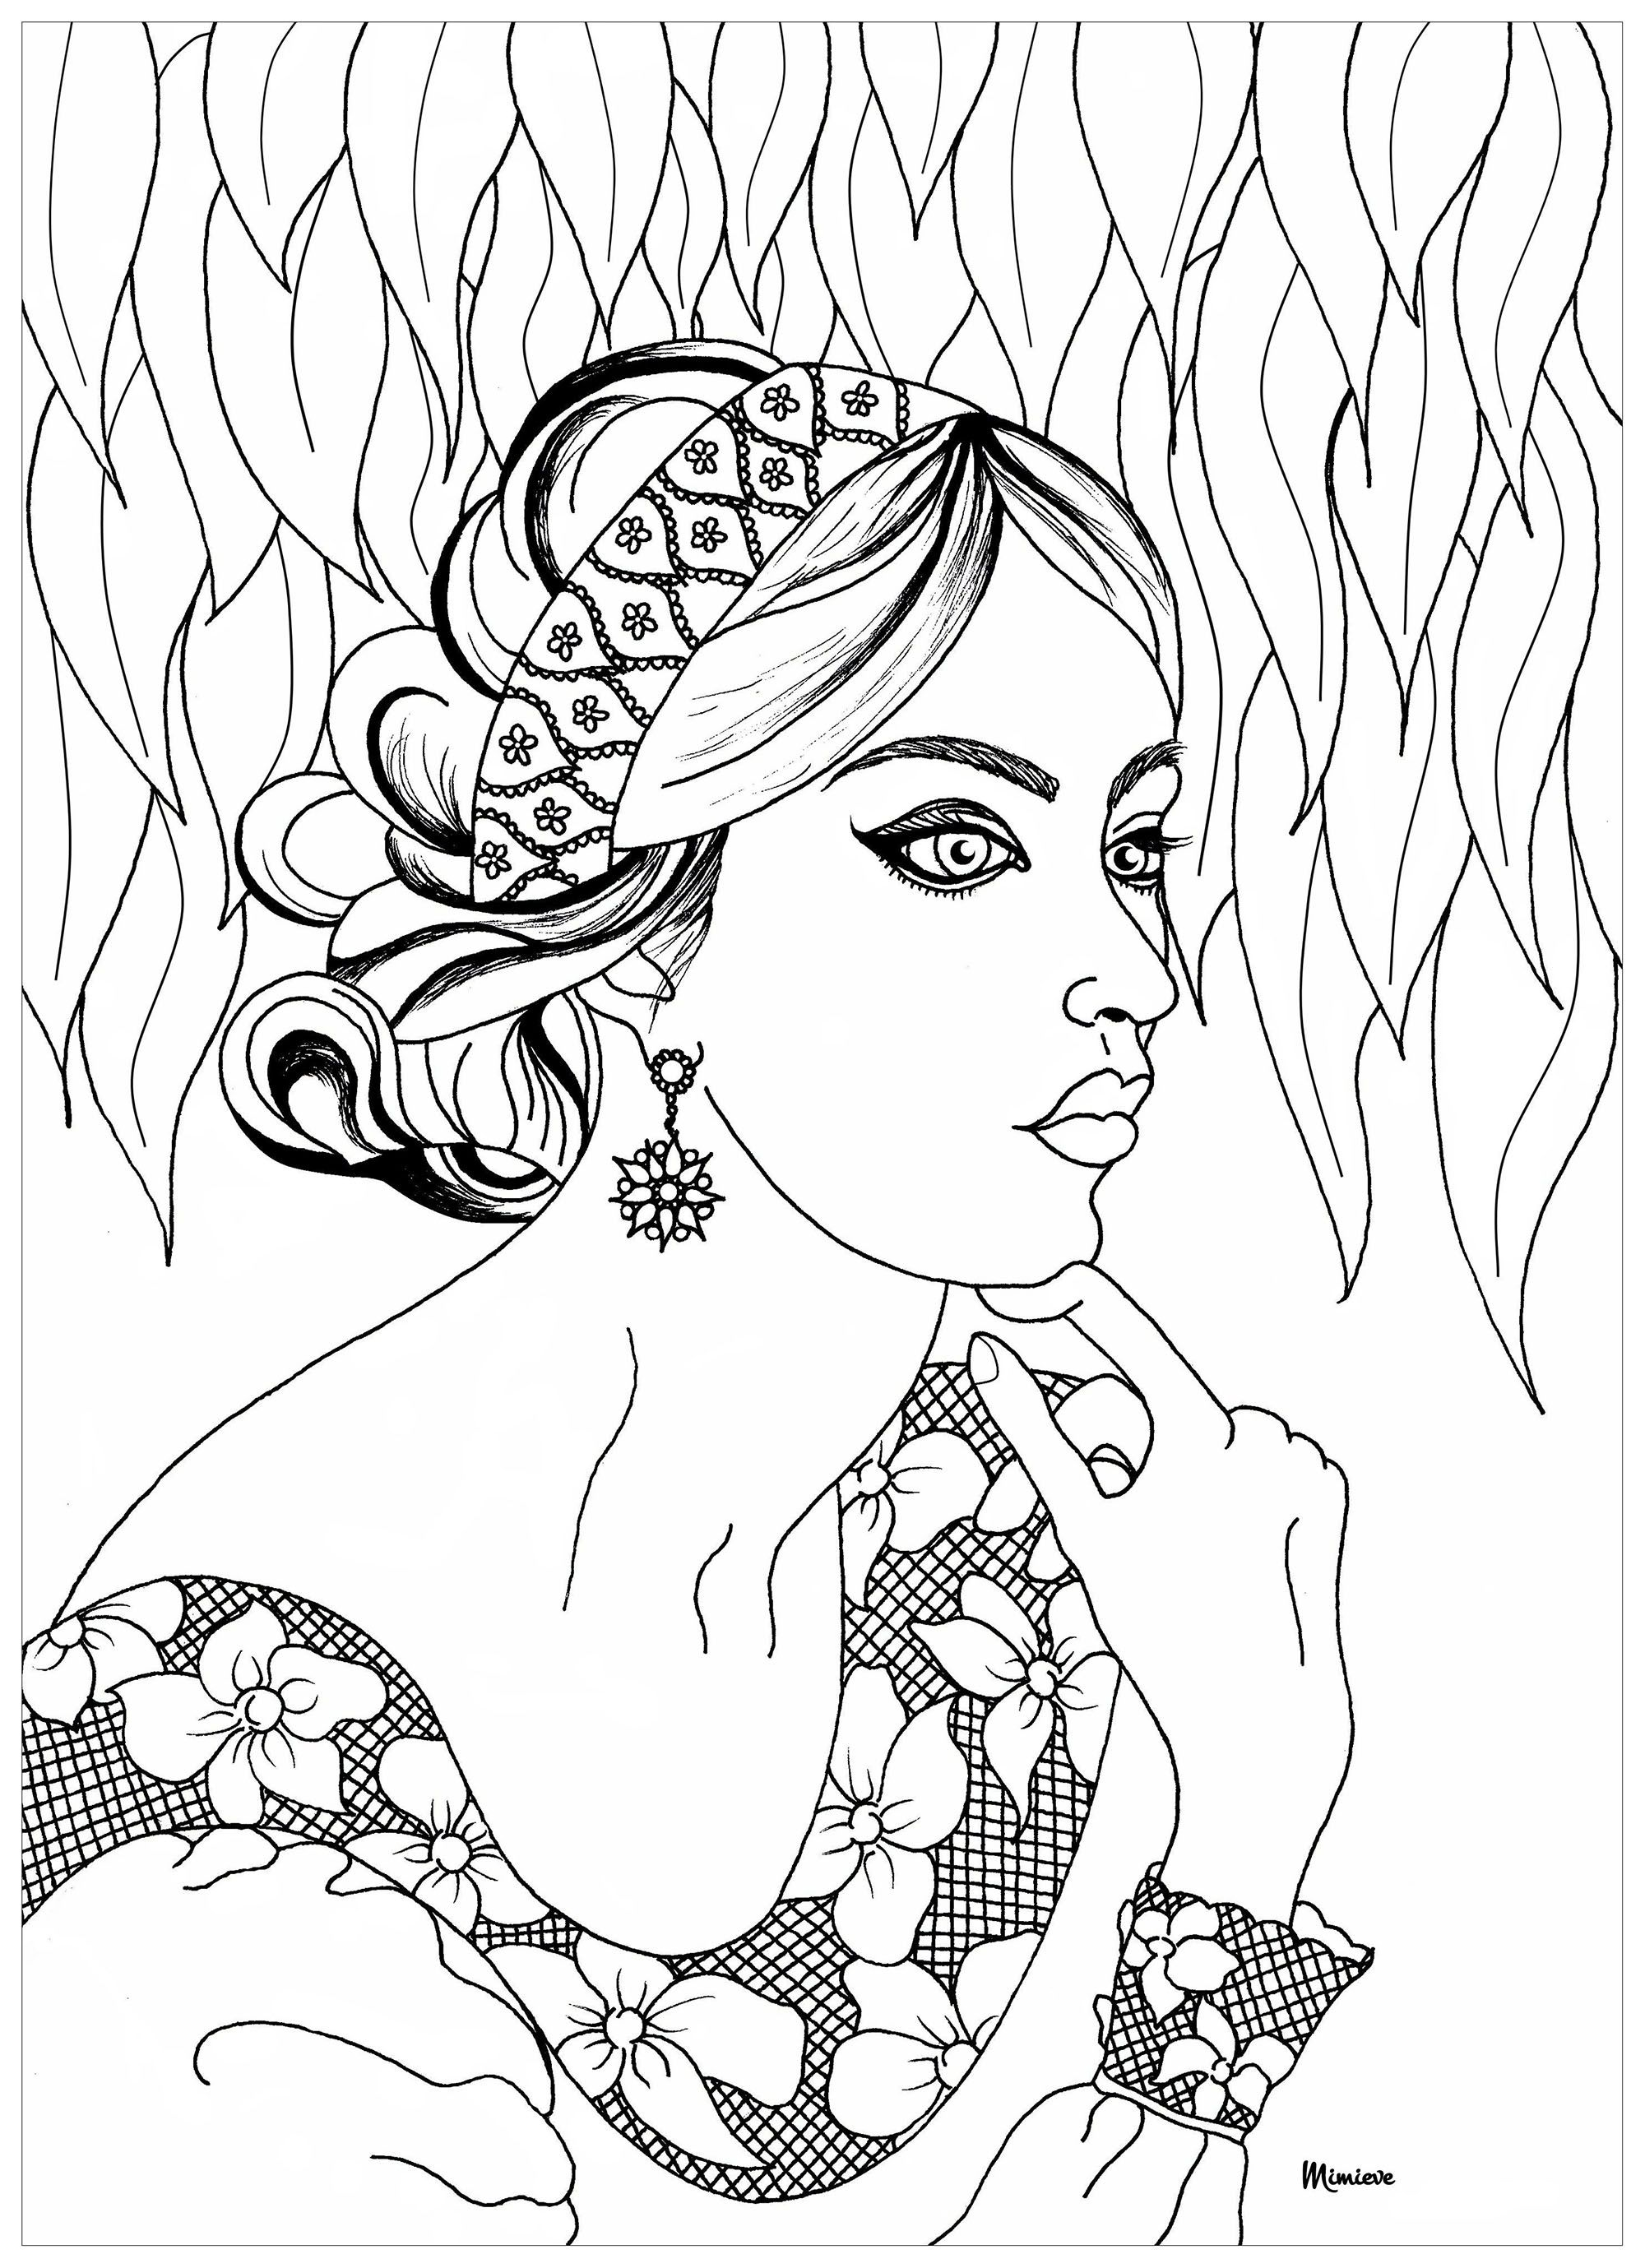 Lace Woman Lace Woman From The Gallery Zen Anti Stress Artist Mimieve Keywords Woma Stress Coloring Book Anti Stress Coloring Book Coloring Pages